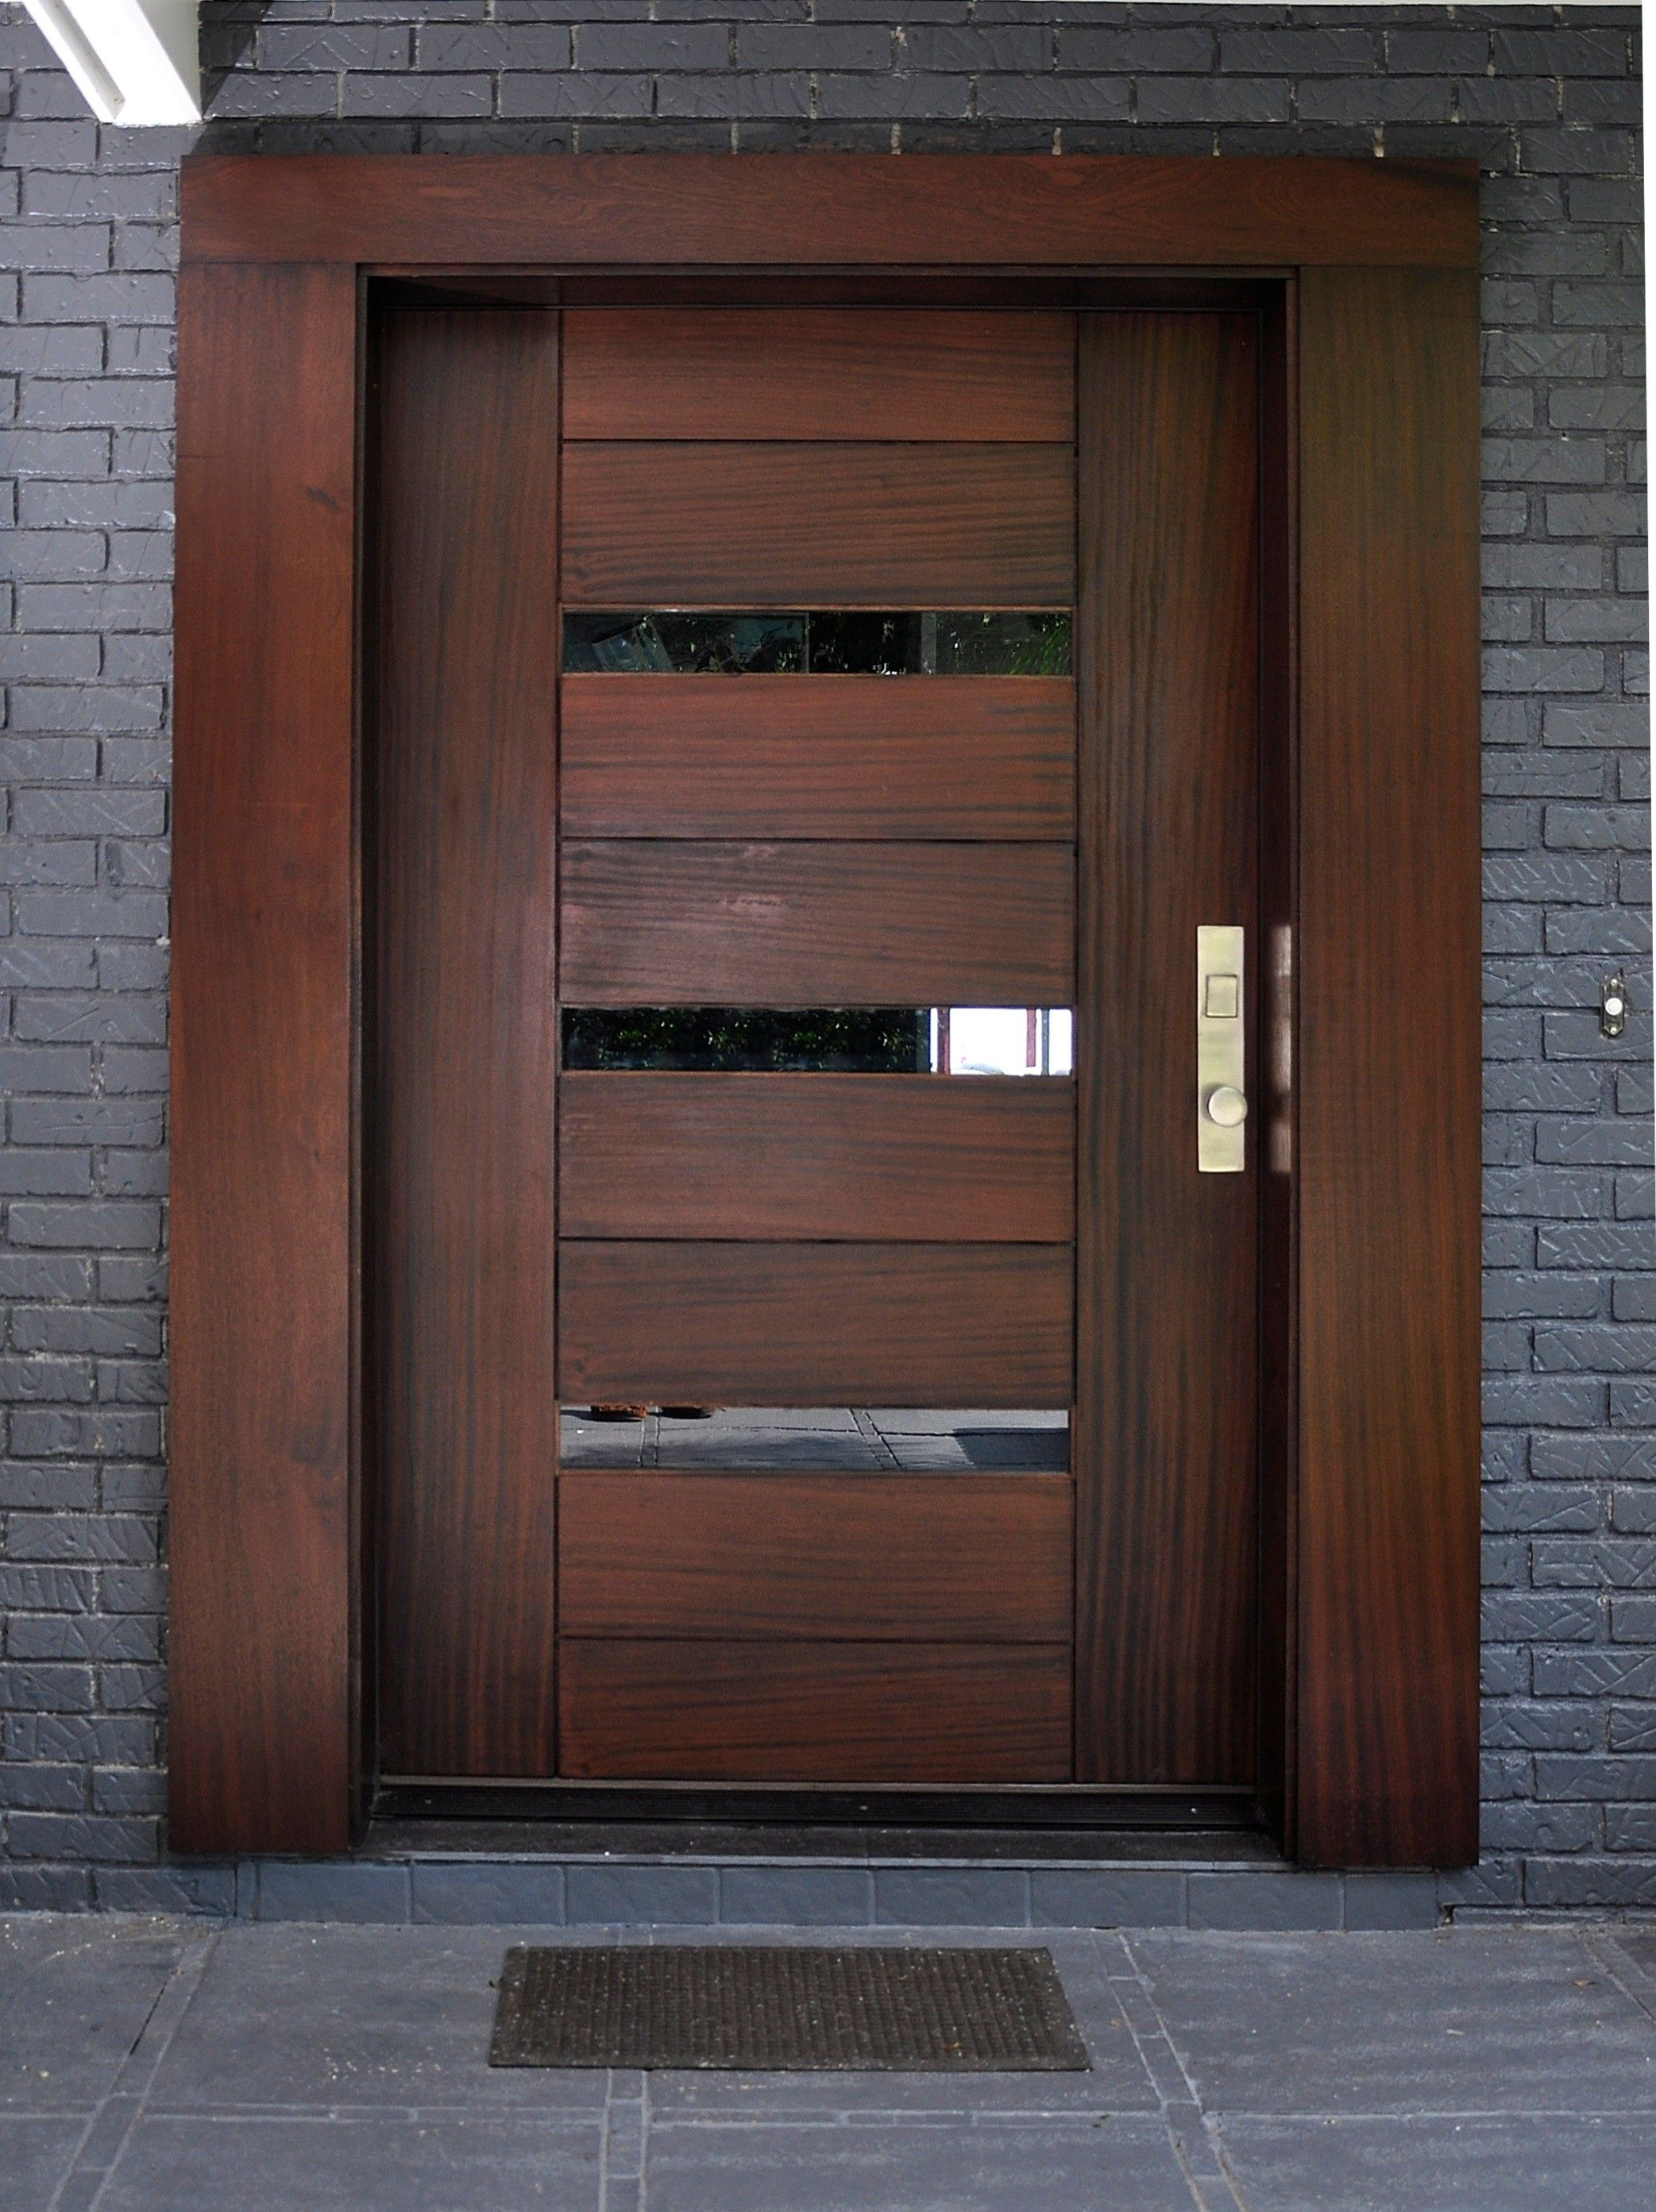 Beautiful modern front door update dark cherry wood with stainless